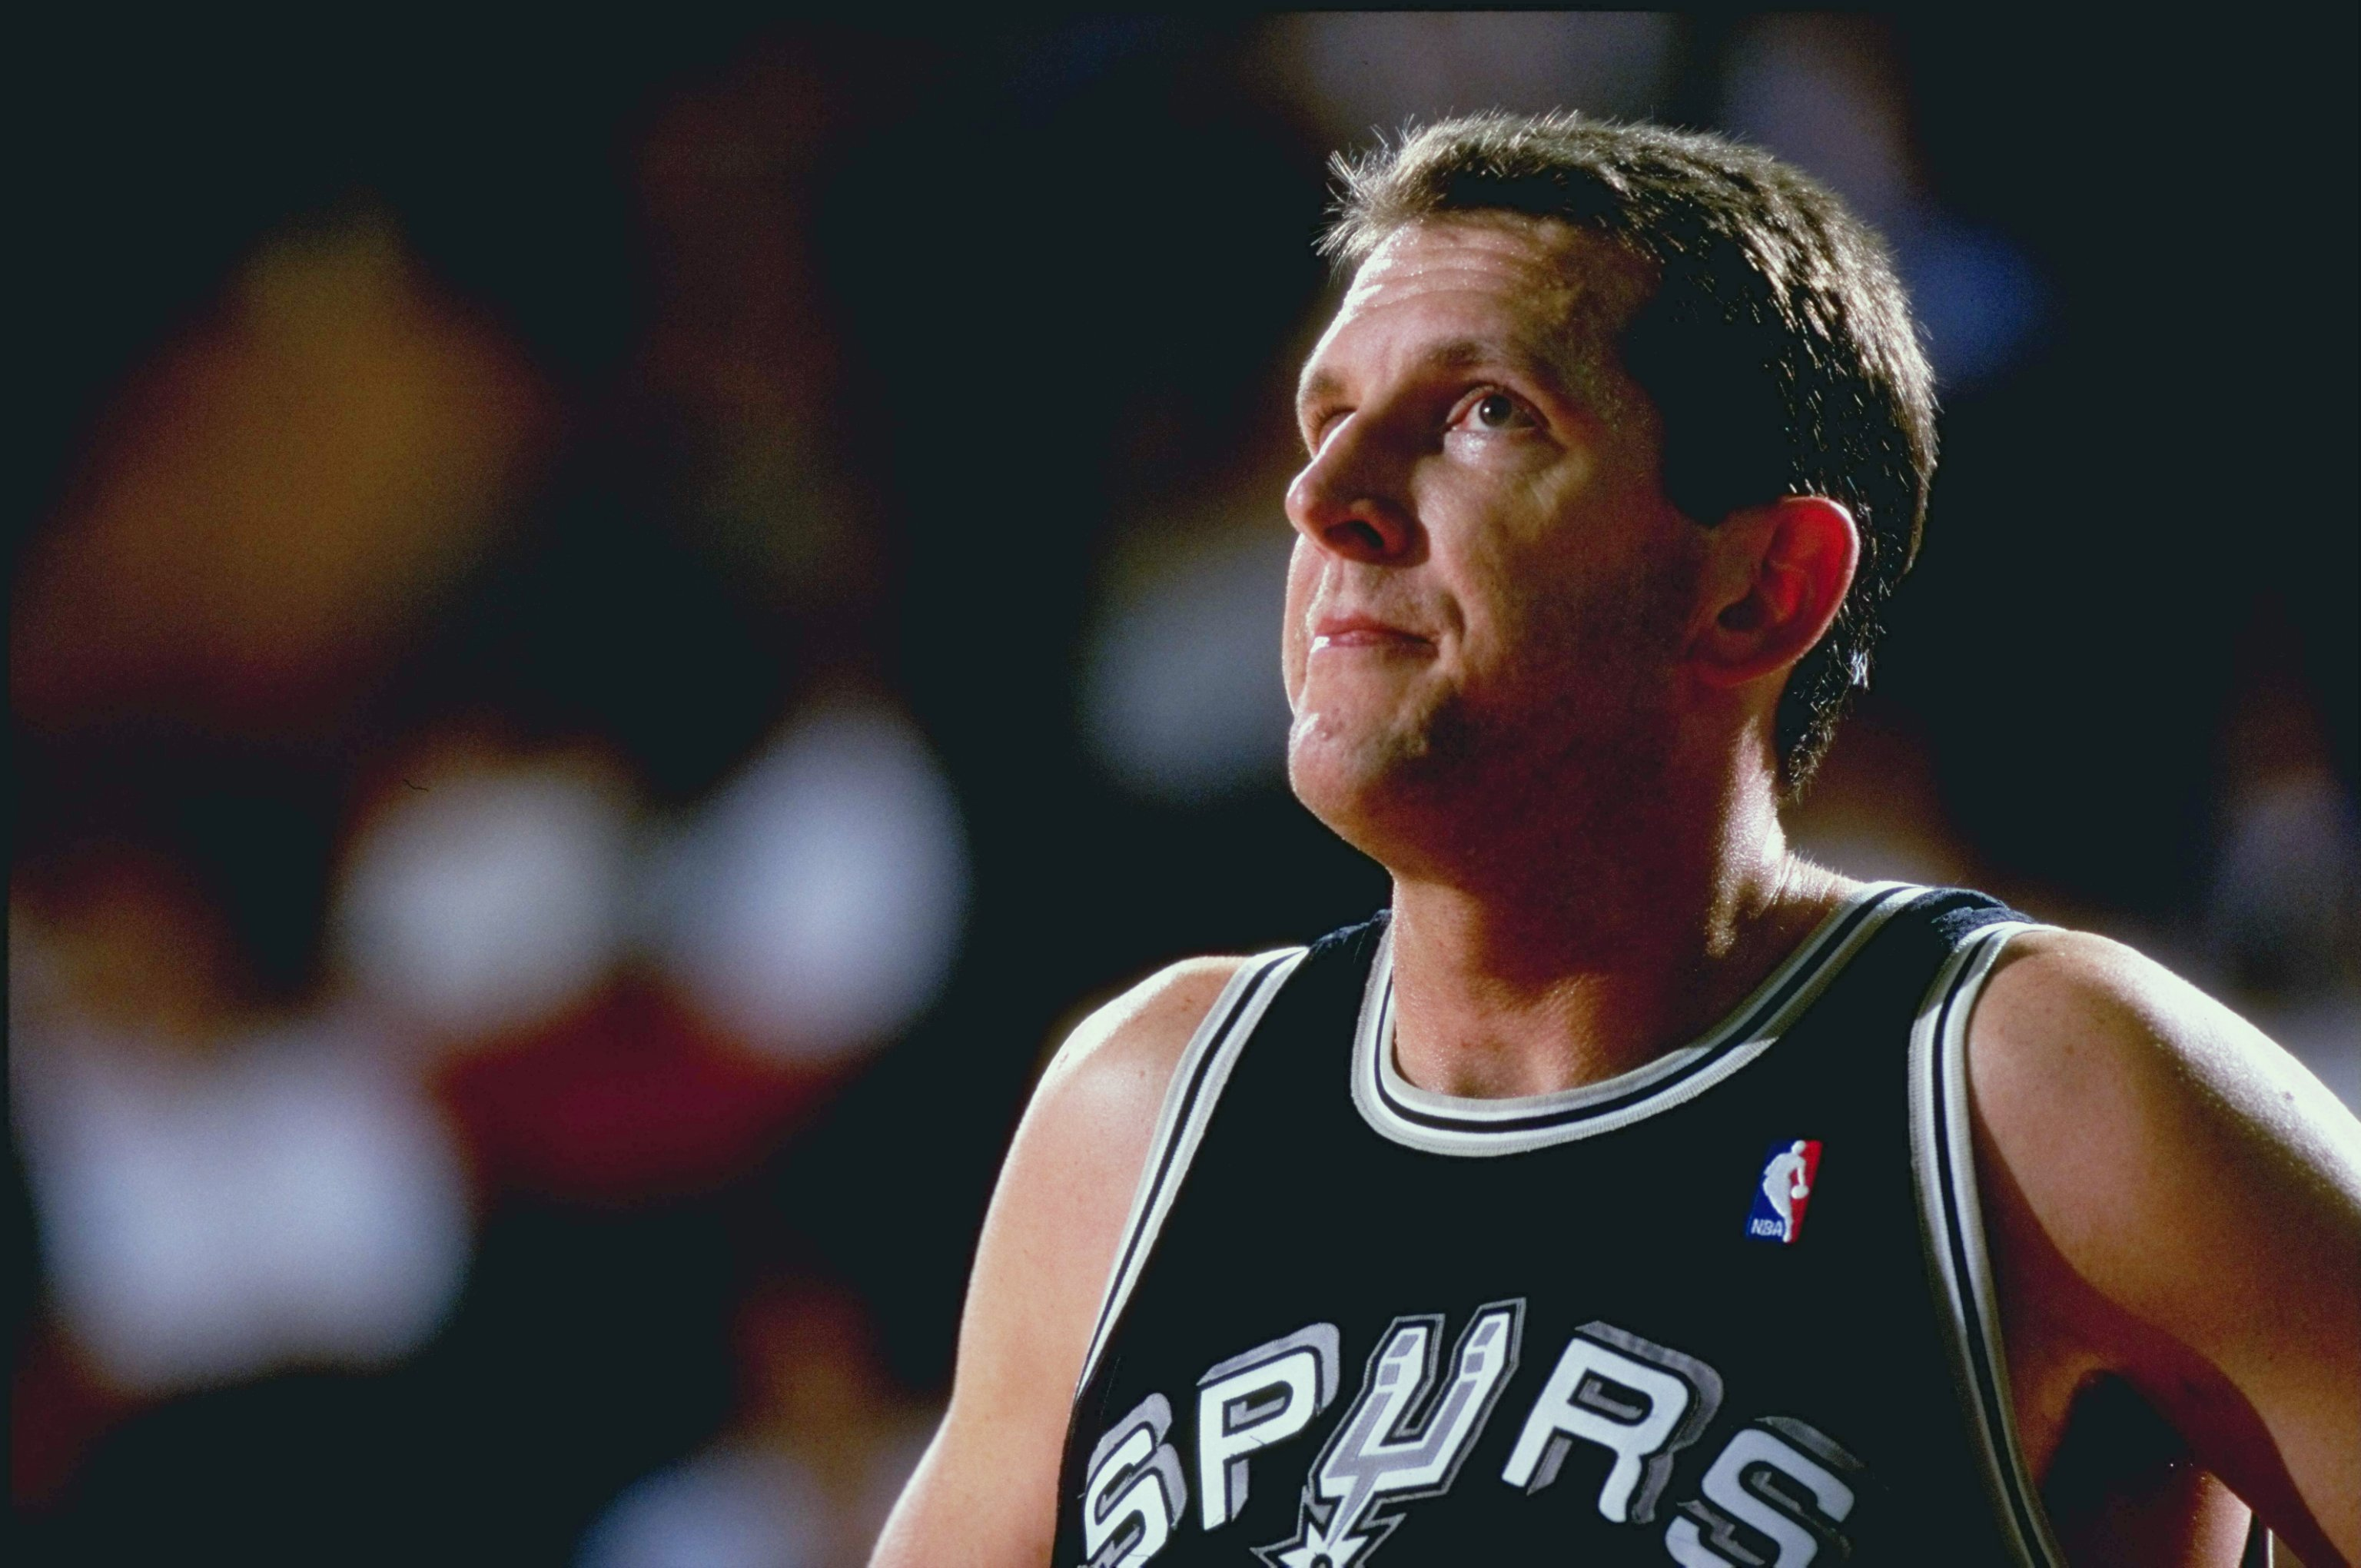 25 Mar 1999: Will Perdue #41 of the San Antonio Spurs looks on  during a game against the Denver Nuggets at the McNichols Sports Arena in Denver, Colorado. The Spurs defeated the Nuggets 86-65.